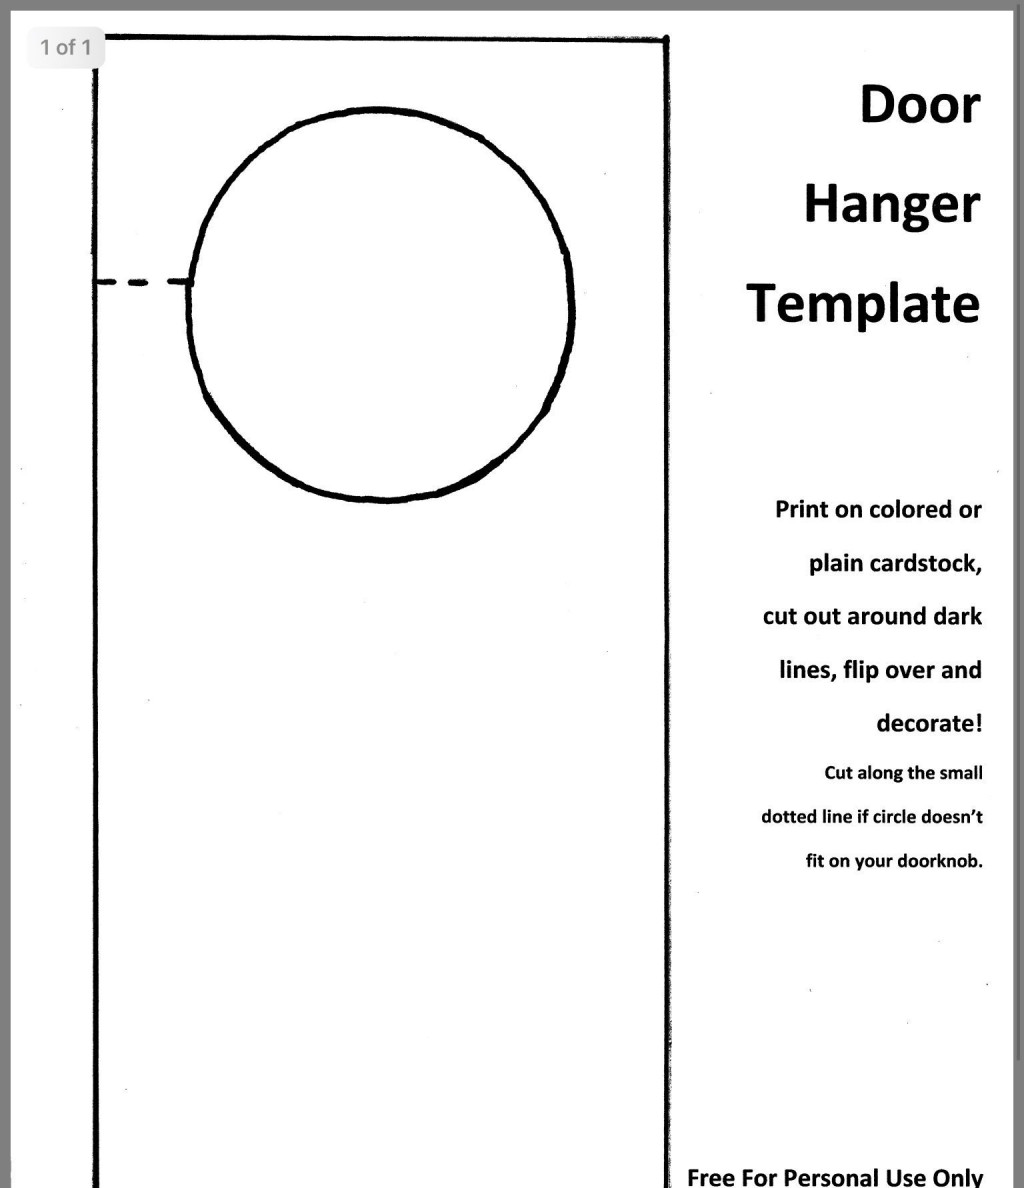 001 Magnificent Door Hanger Template Word Highest Clarity  Download Free Blank For MicrosoftLarge